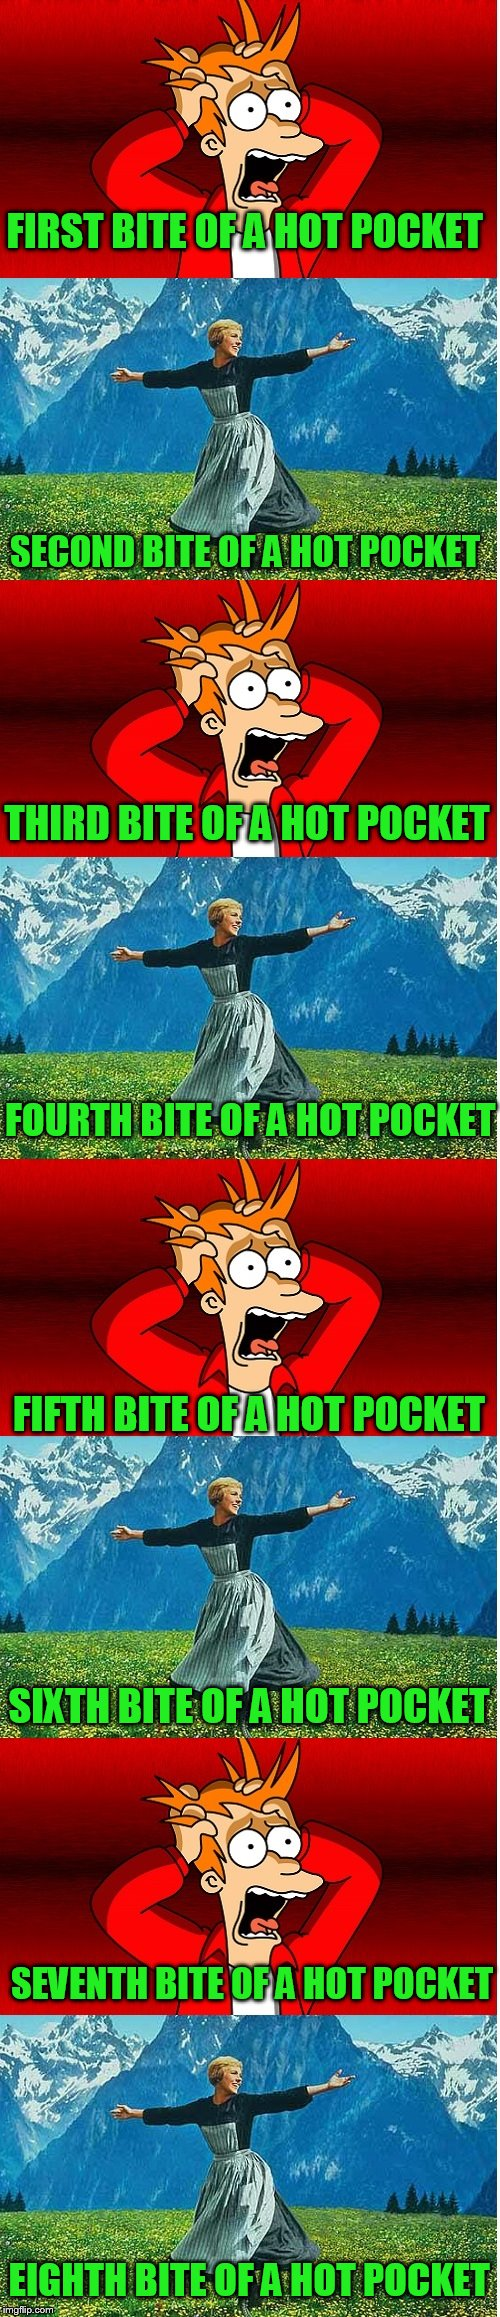 Eating lunch from the microwave today | FIRST BITE OF A HOT POCKET EIGHTH BITE OF A HOT POCKET SECOND BITE OF A HOT POCKET THIRD BITE OF A HOT POCKET FOURTH BITE OF A HOT POCKET FI | image tagged in hot pockets,lunch time | made w/ Imgflip meme maker